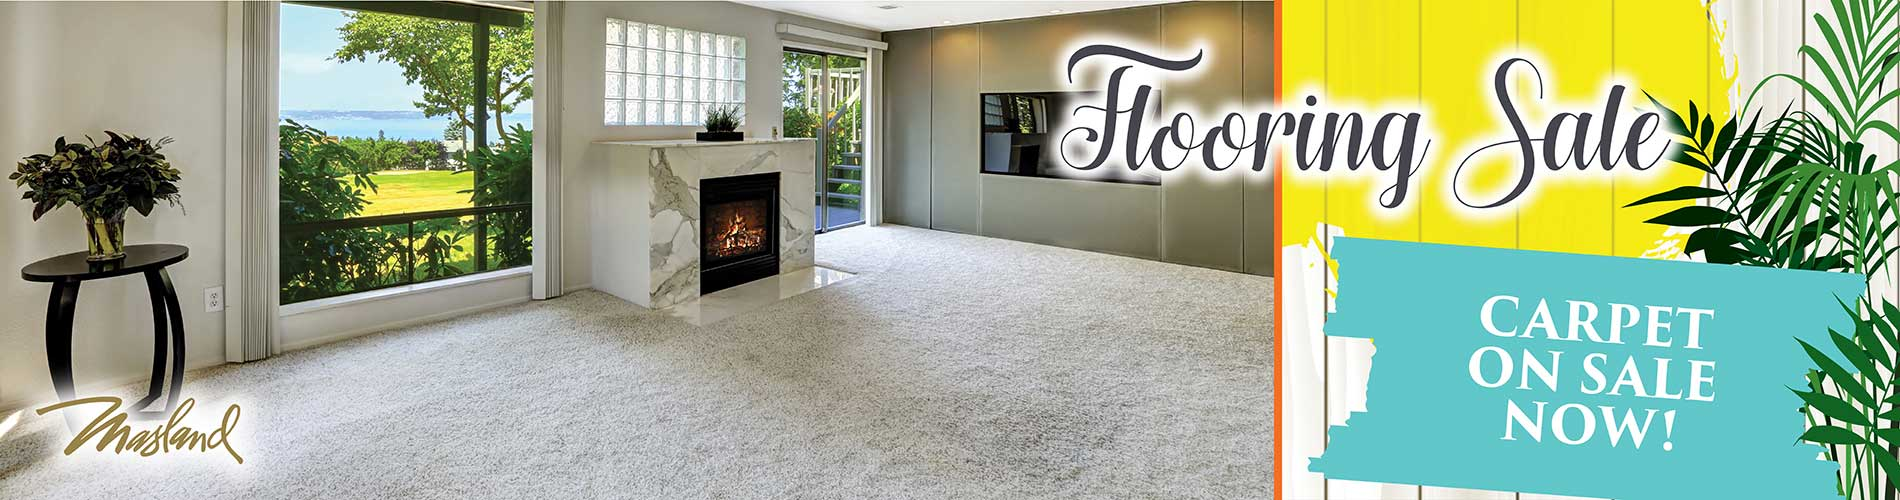 Masland carpet on sale now at Flooring USA in Stuart!